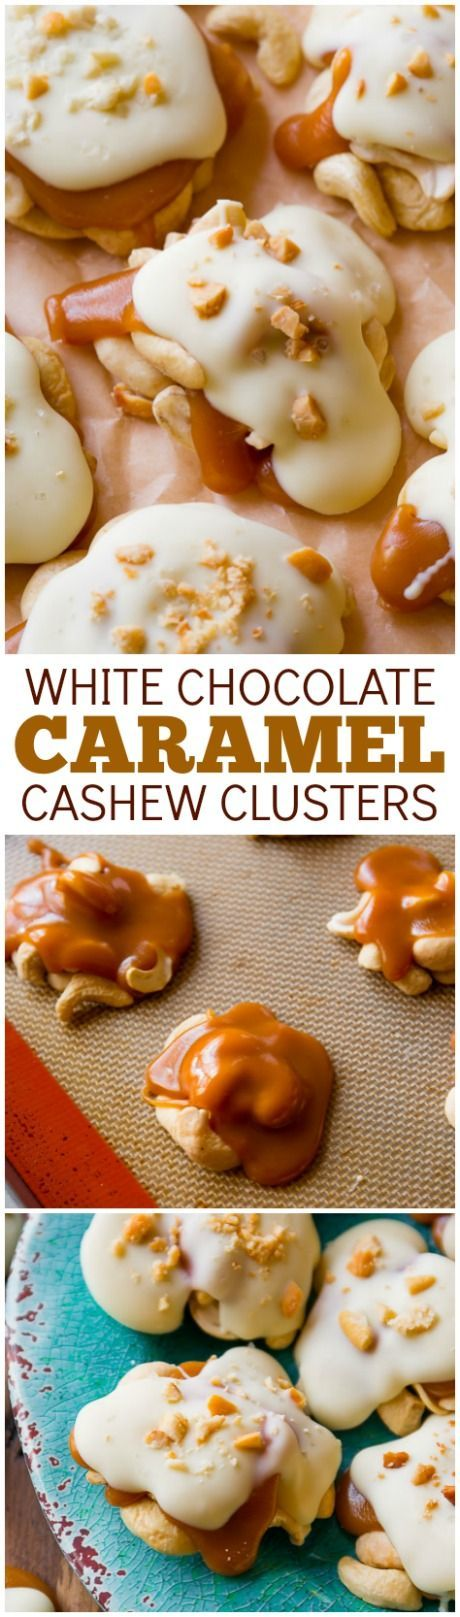 4 ingredient caramel cashew clusters! These candies are so easy and can be frozen for a simple make-ahead treat! Recipe found on http://sallysbakingaddiction.com